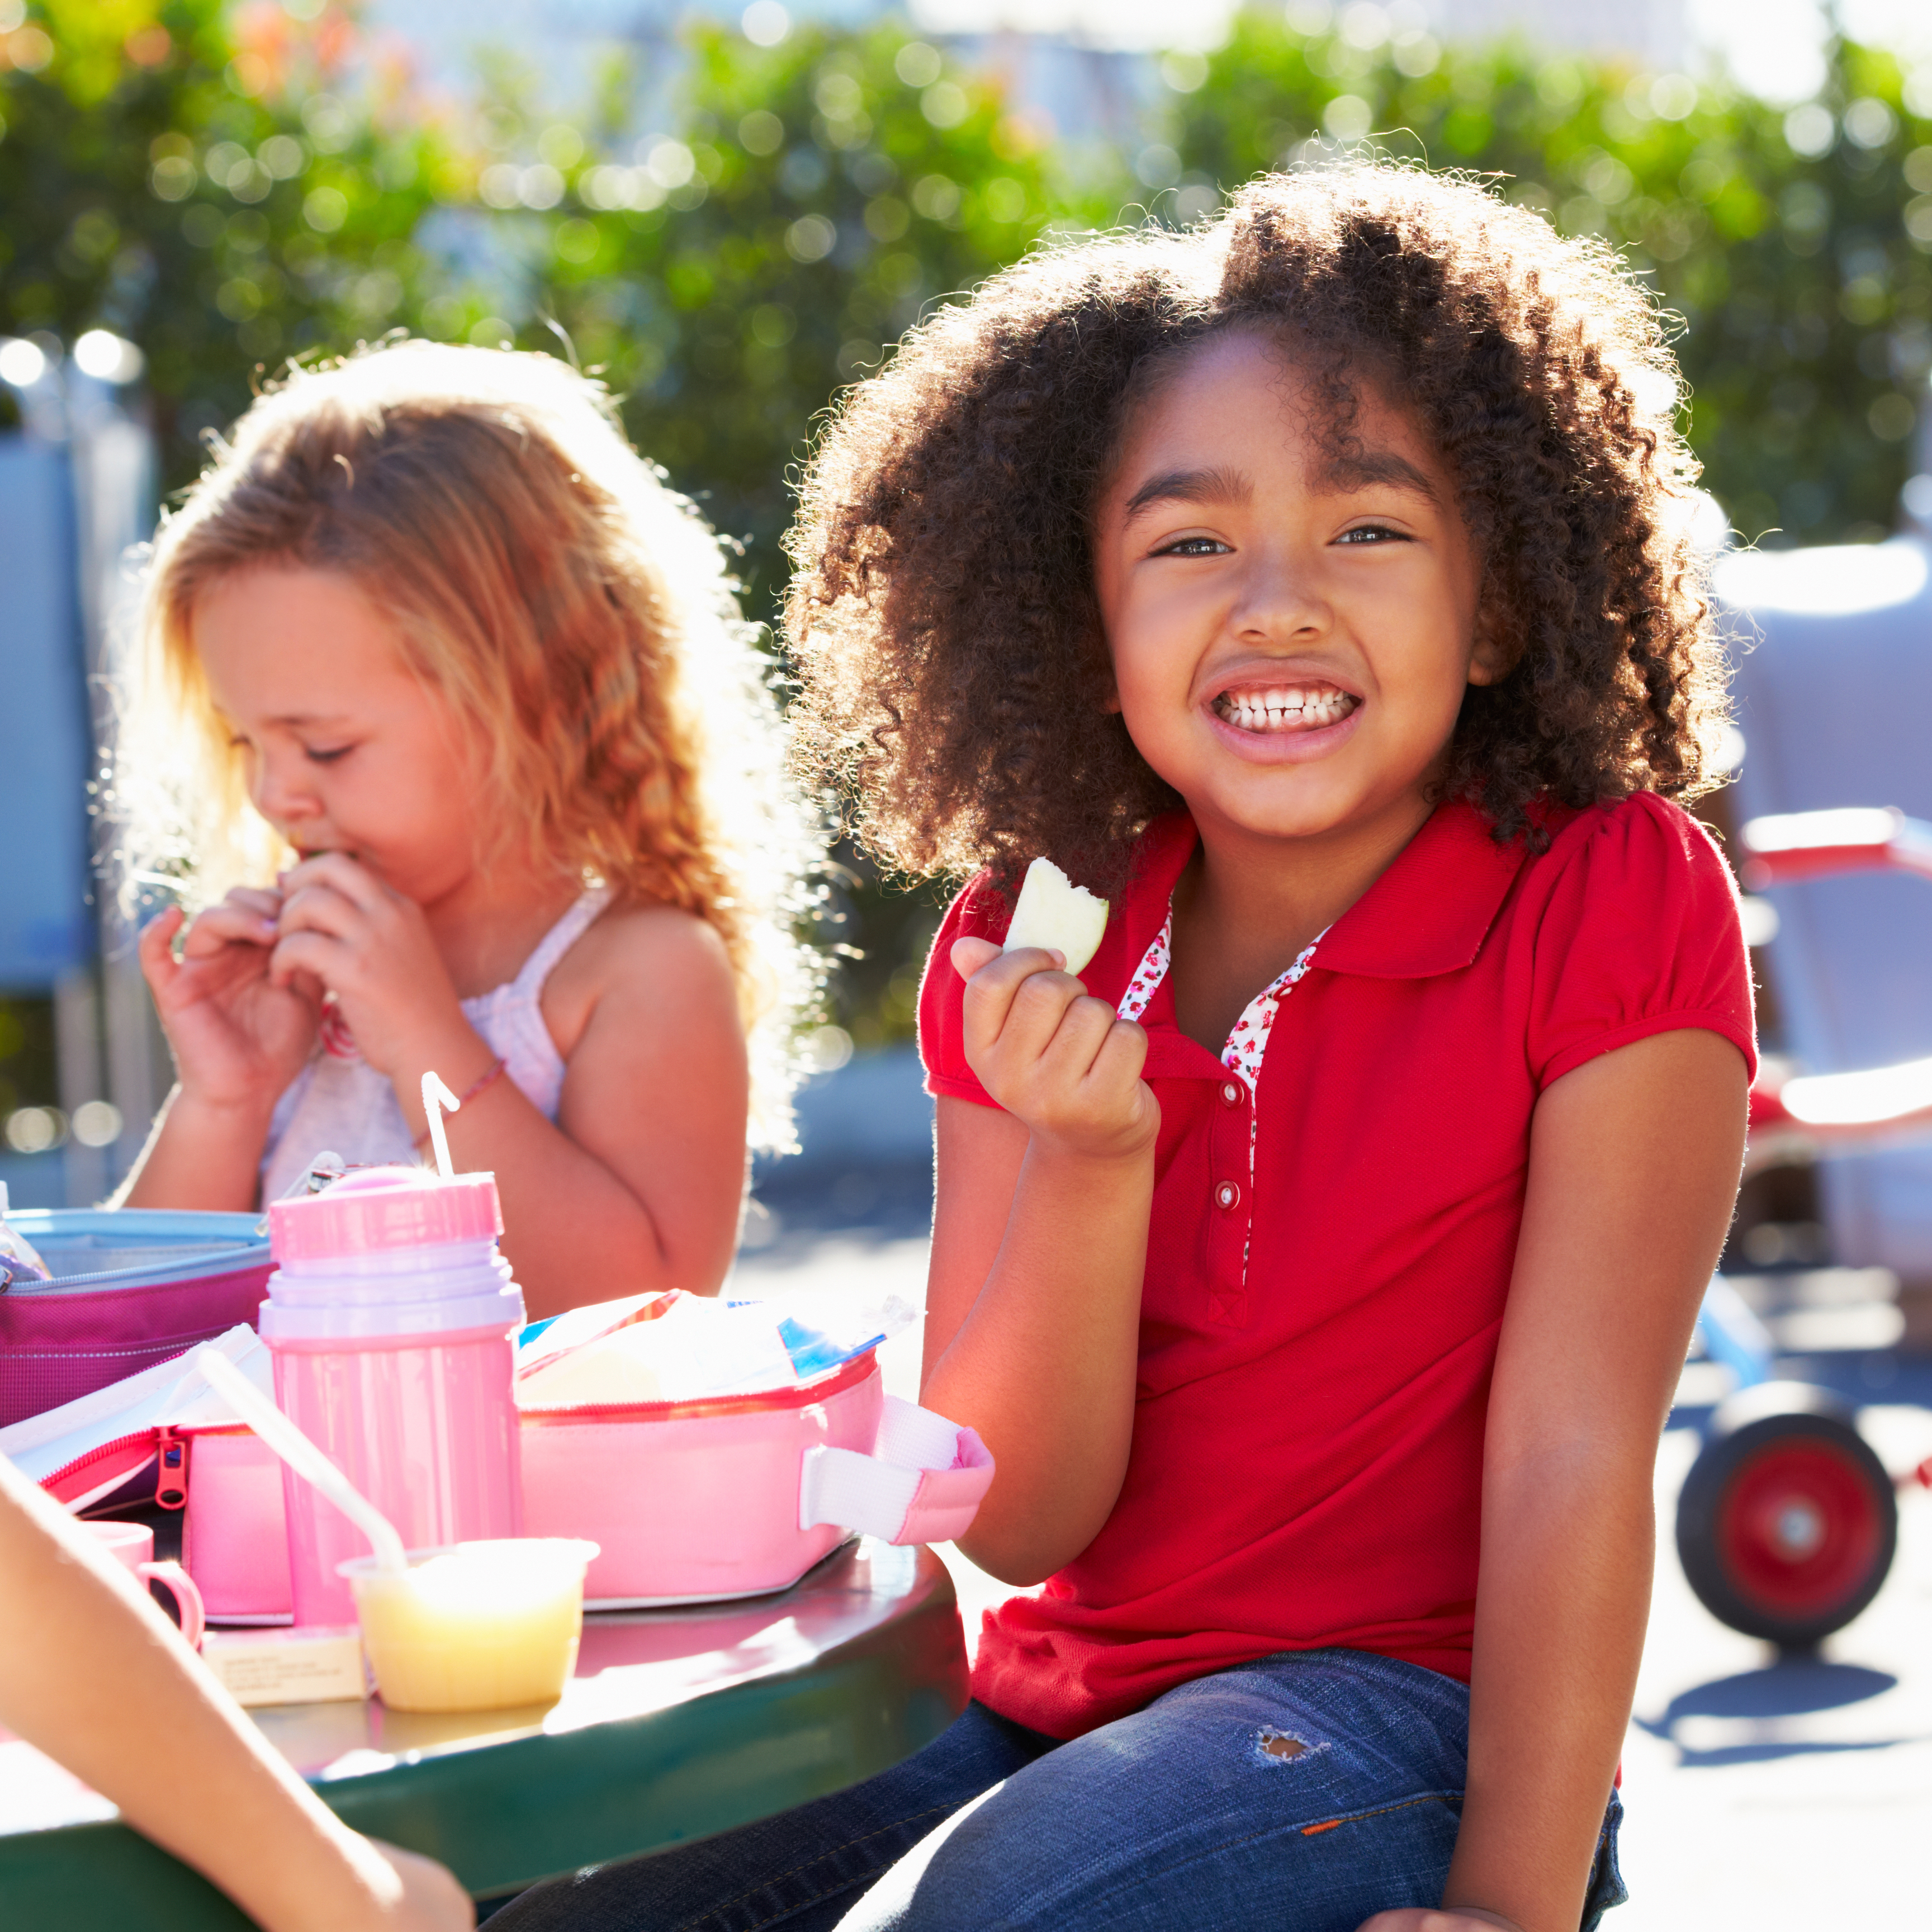 5 tips for packing healthy school lunches